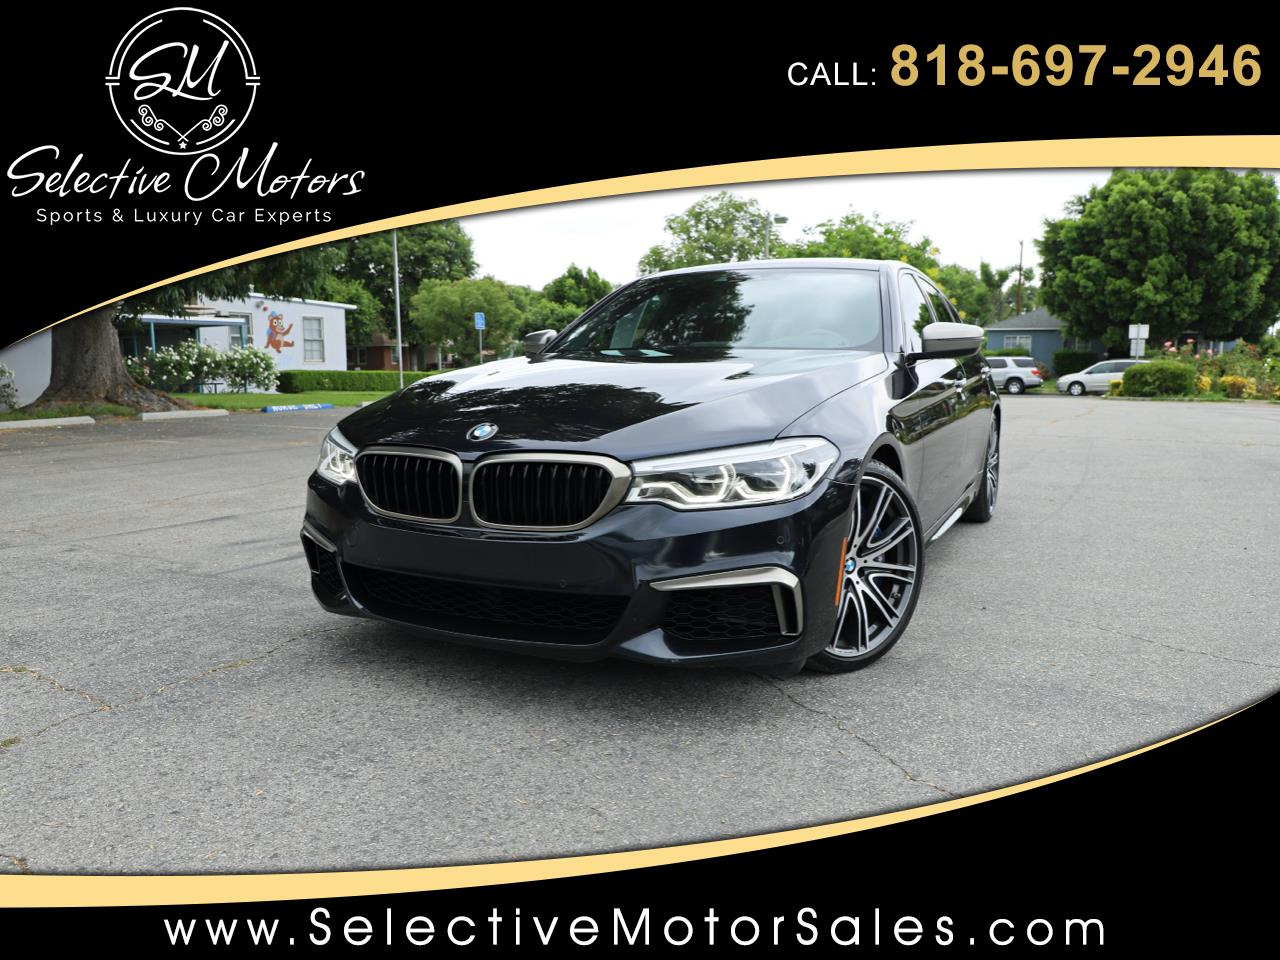 BMW 5-Series M550i xDrive 2018